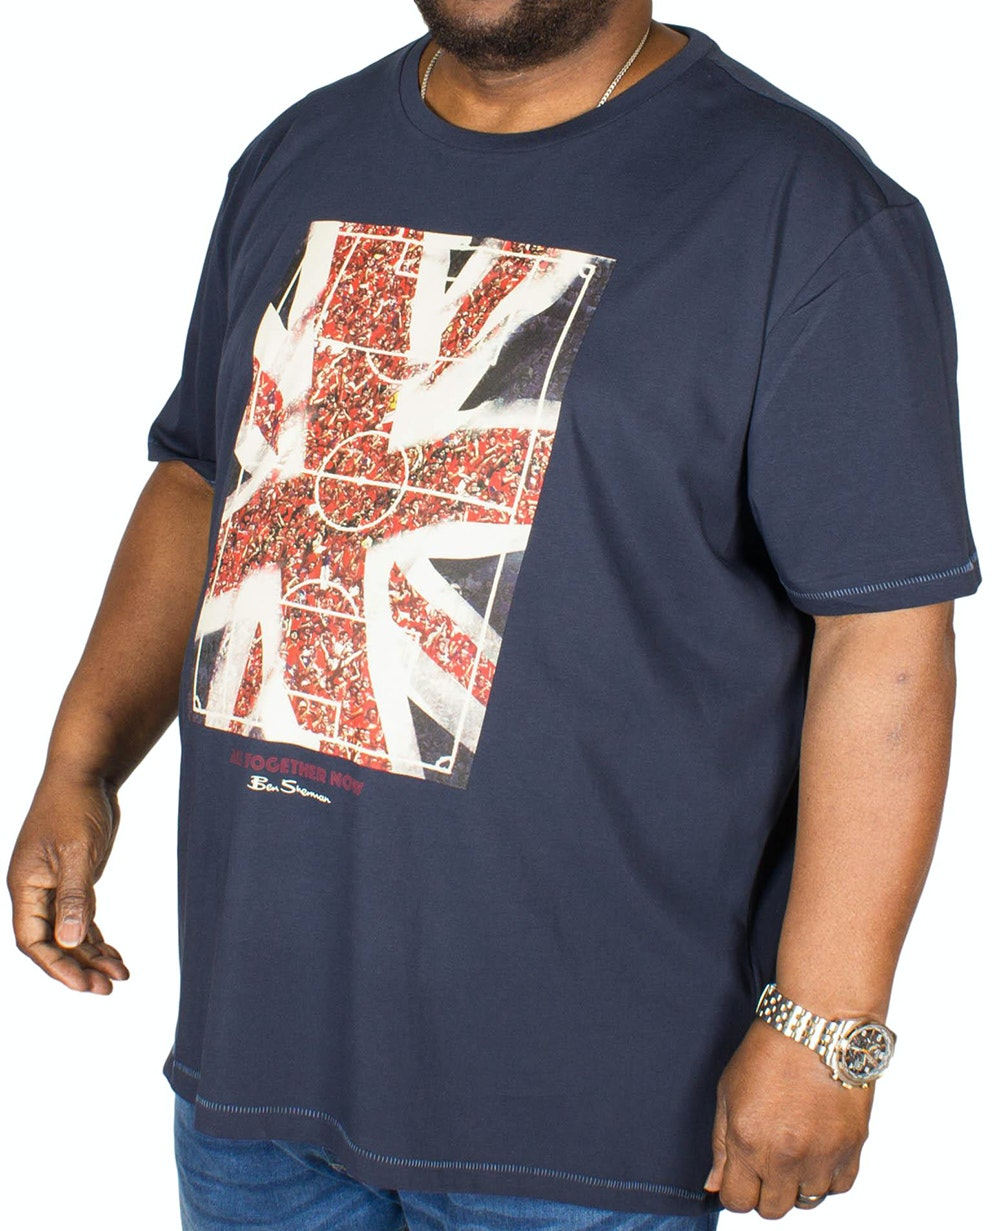 Ben Sherman Union Jack Fans T-Shirt Navy